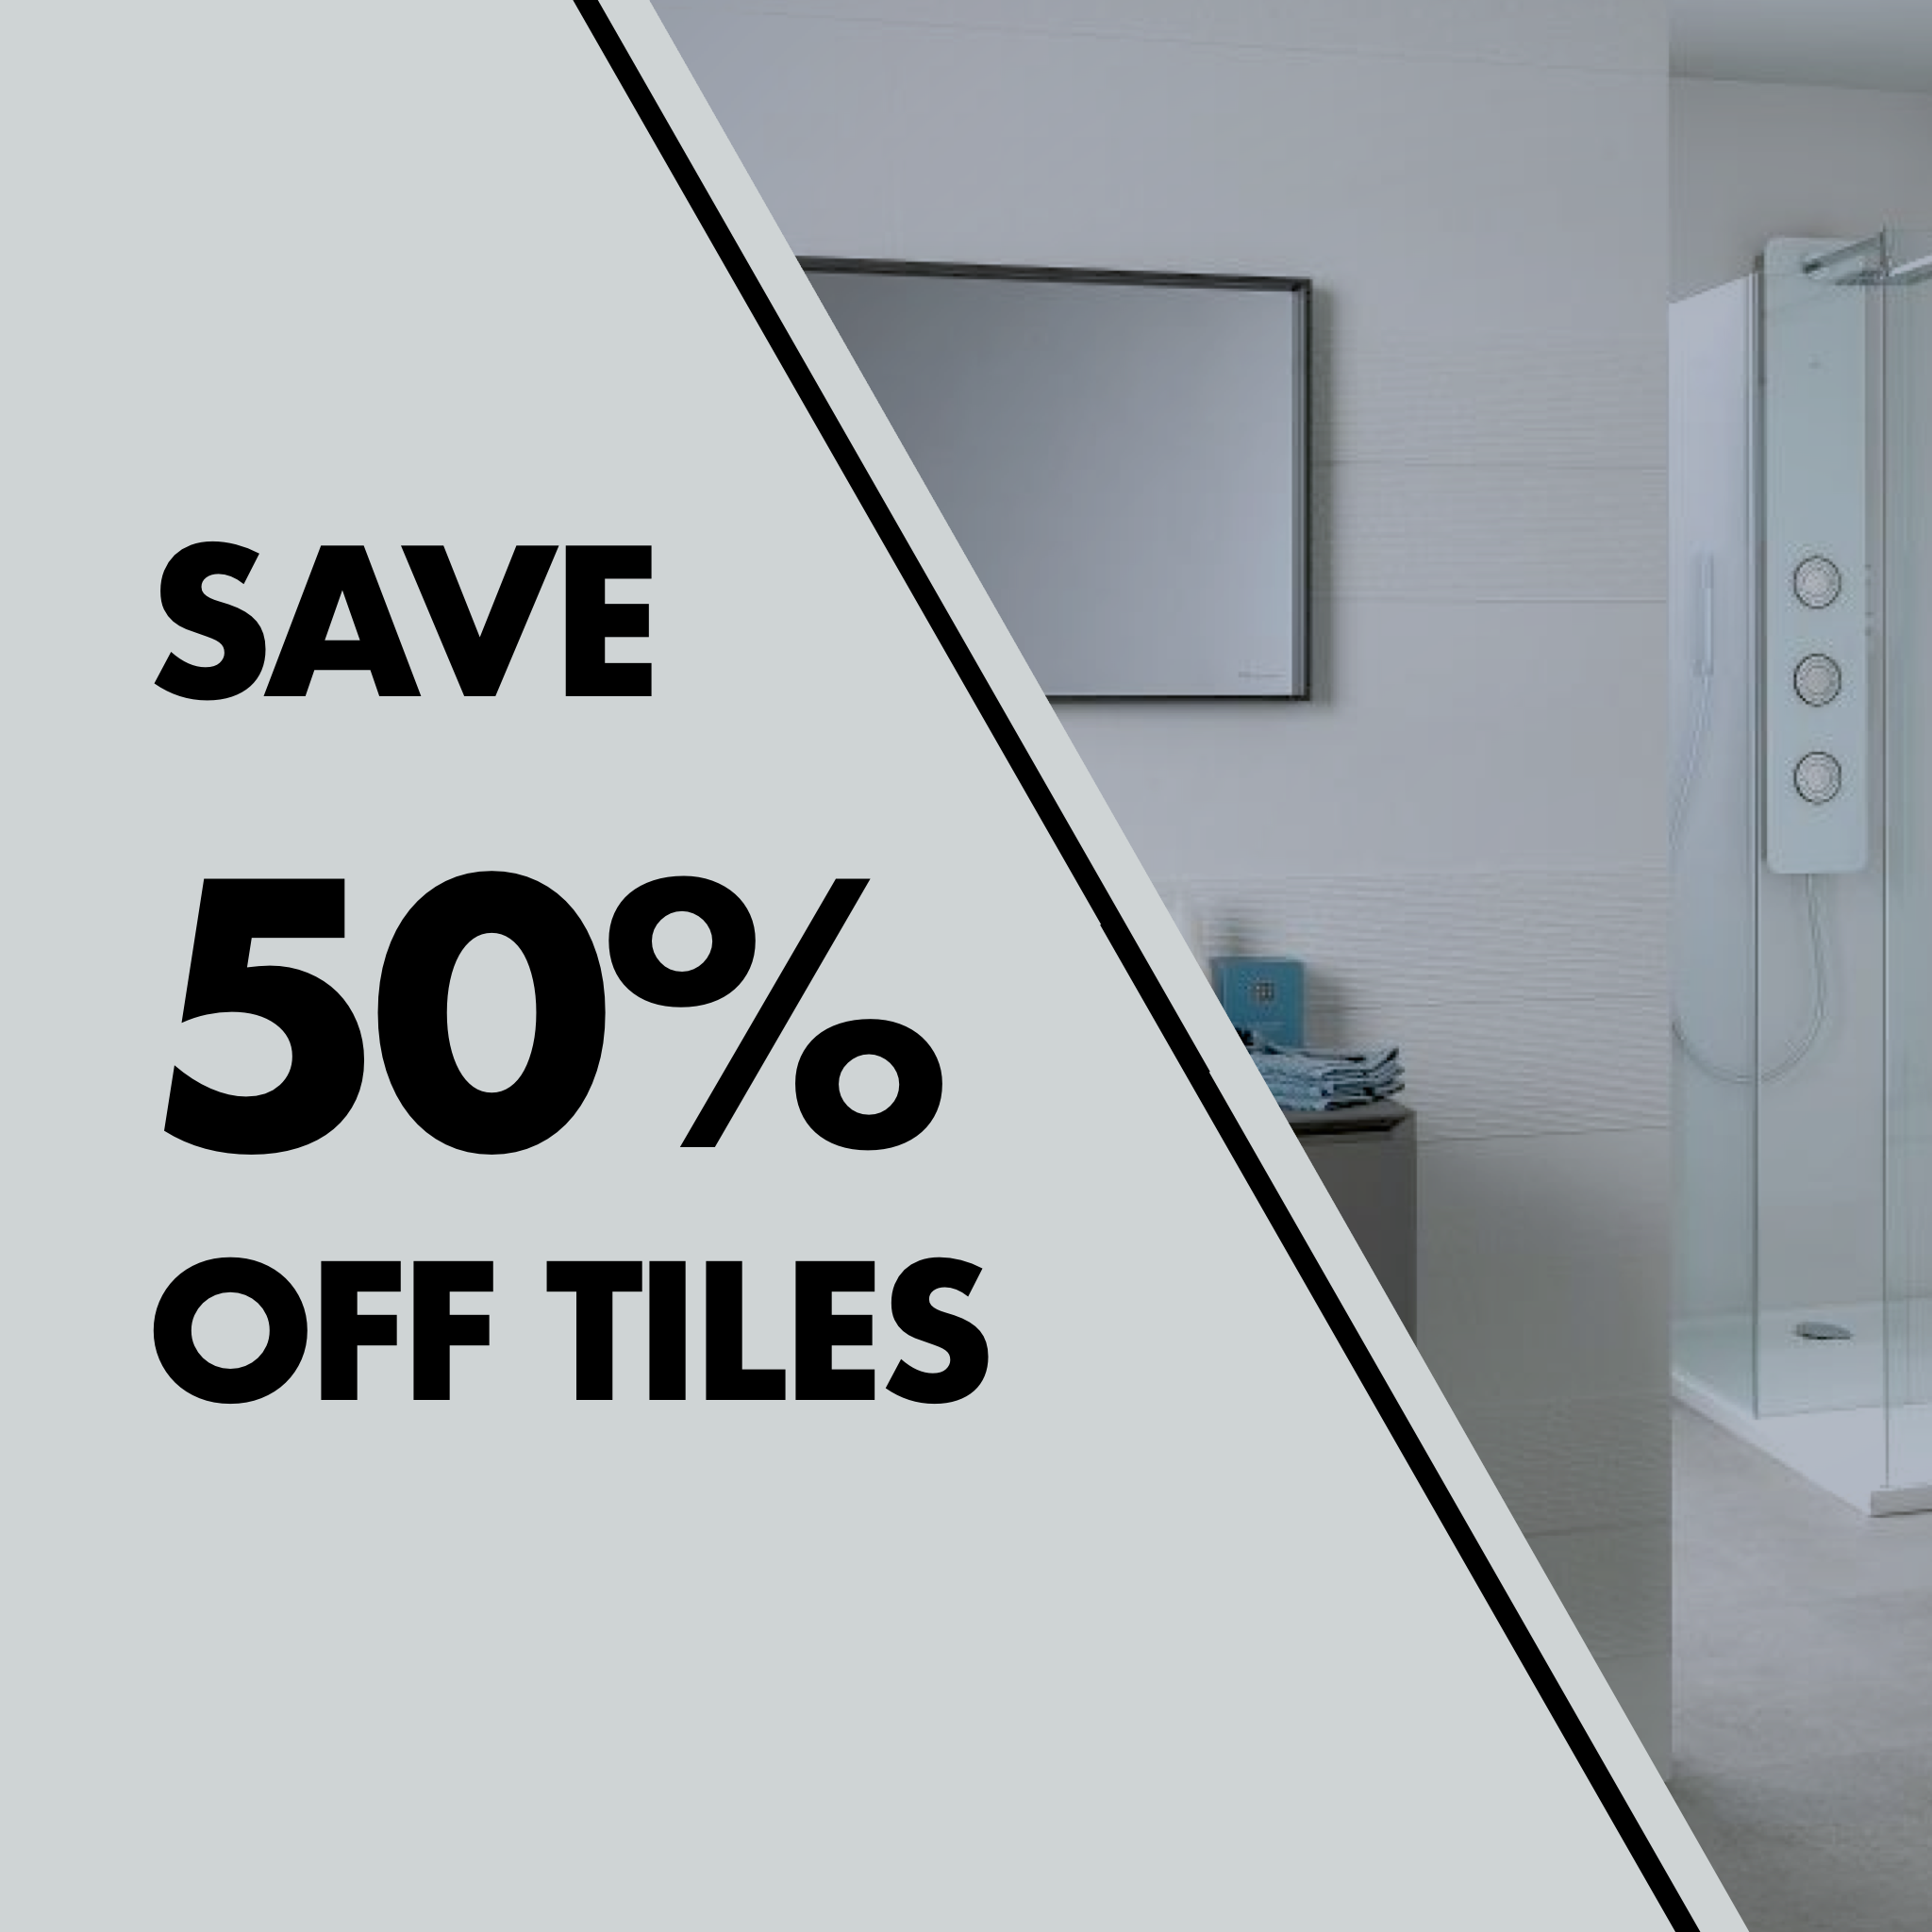 Tiles Promo Up To 50%